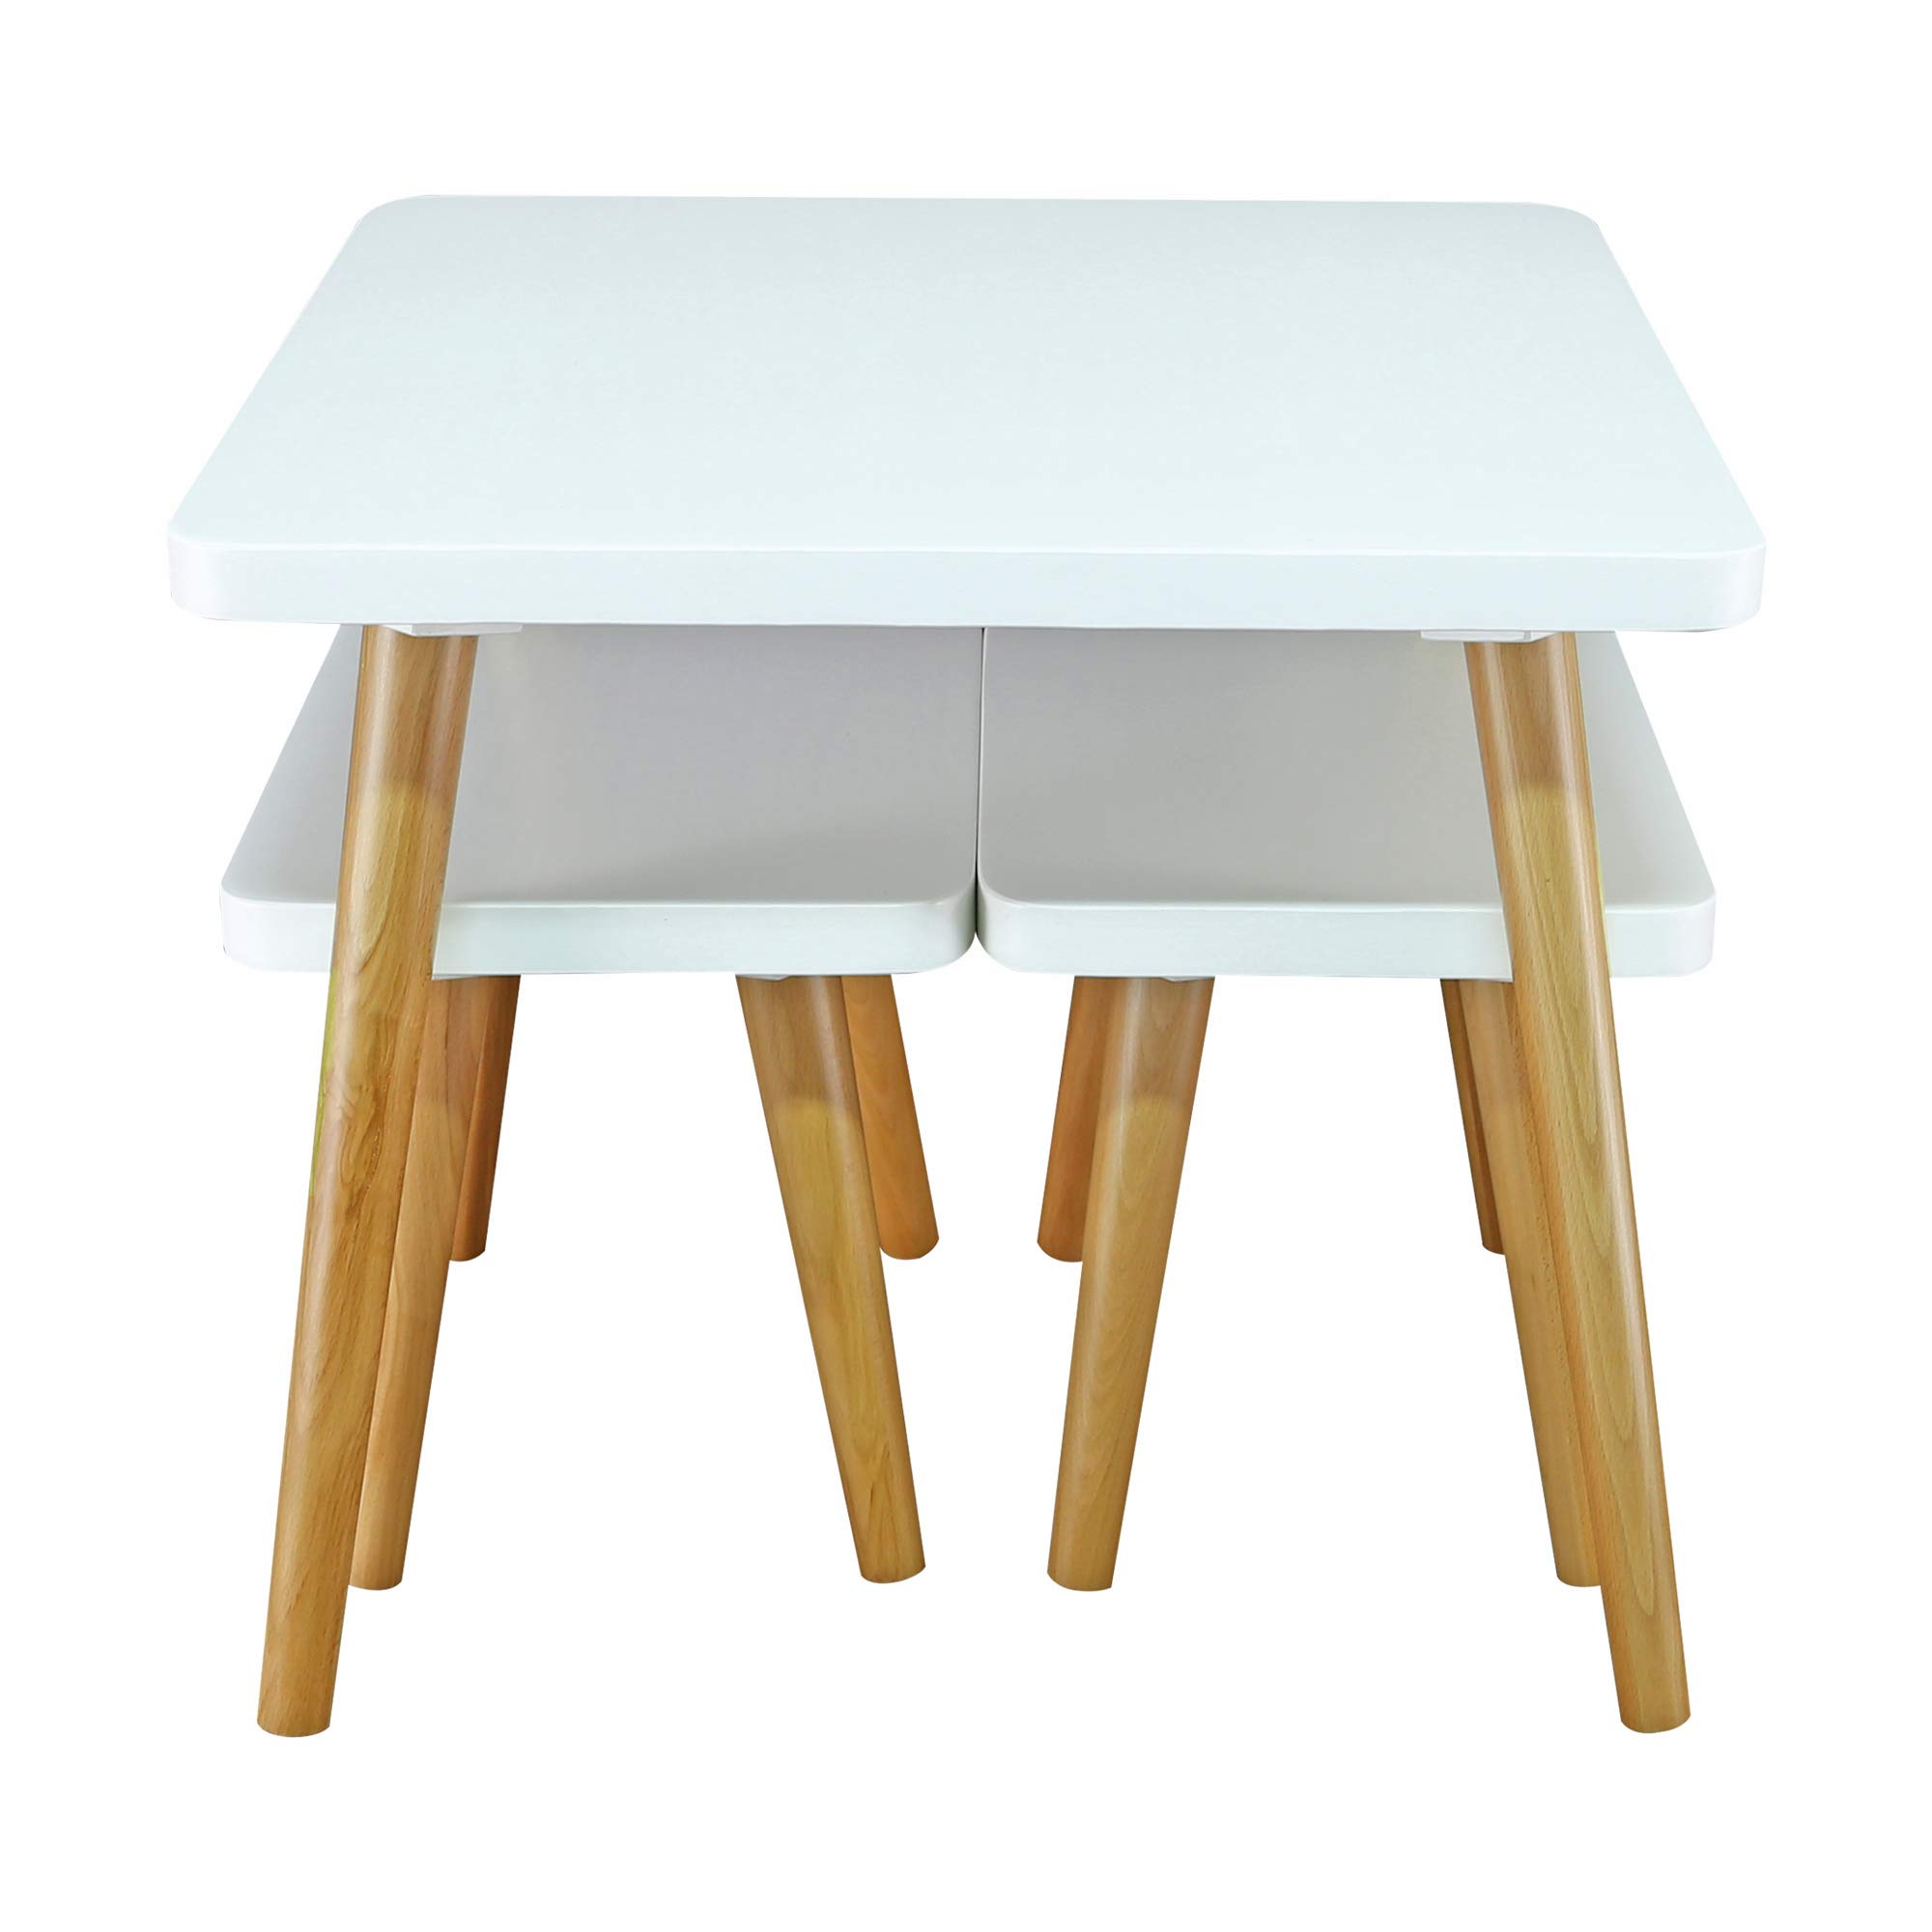 American Trails 560-31 The Easel Table & Chair Set Kid Table, Two-Tone (White, Natural) by American Trails (Image #6)